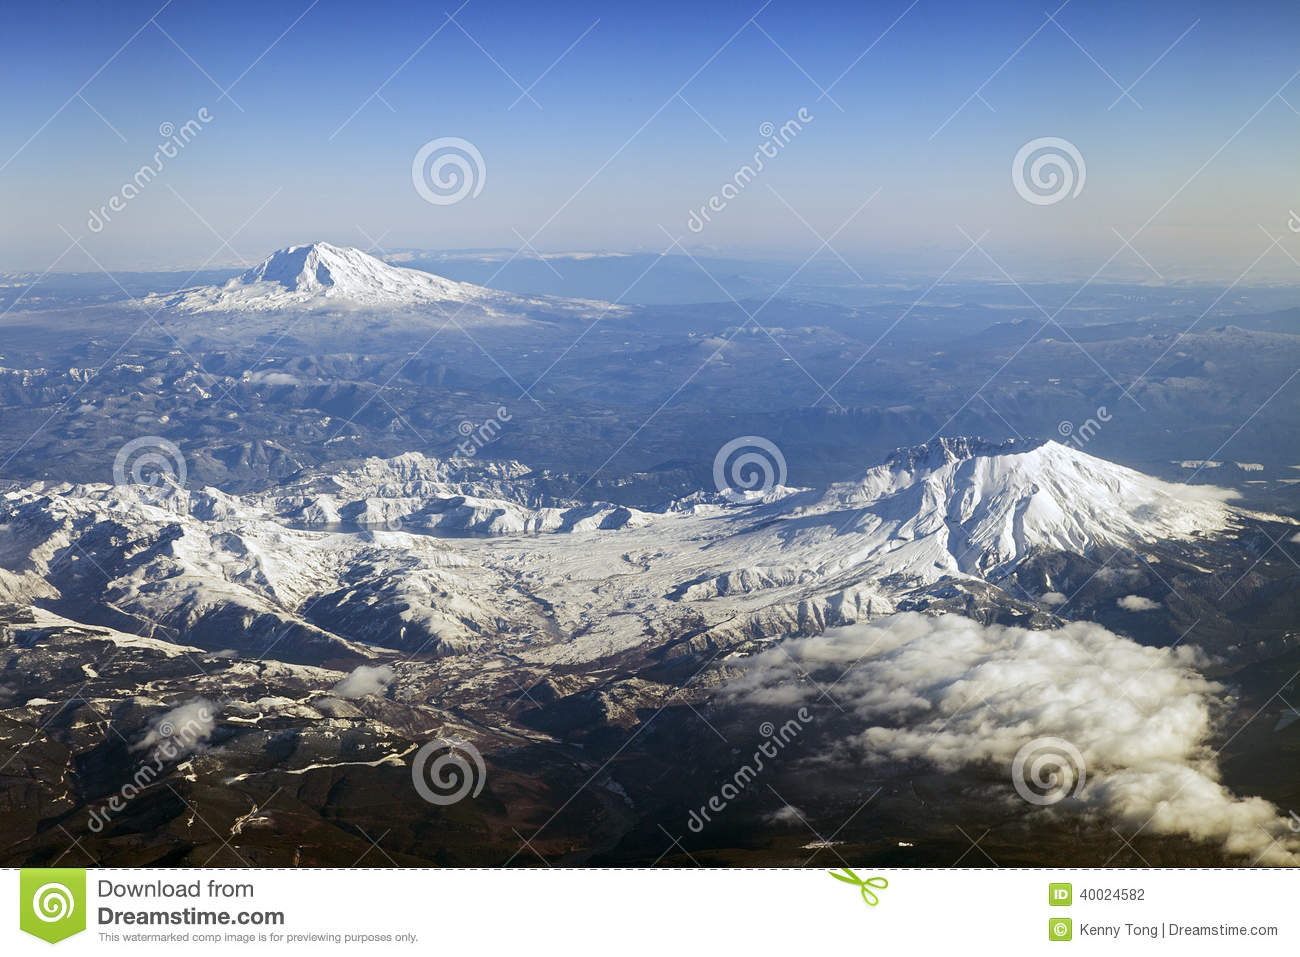 Mount Adams clipart #7, Download drawings